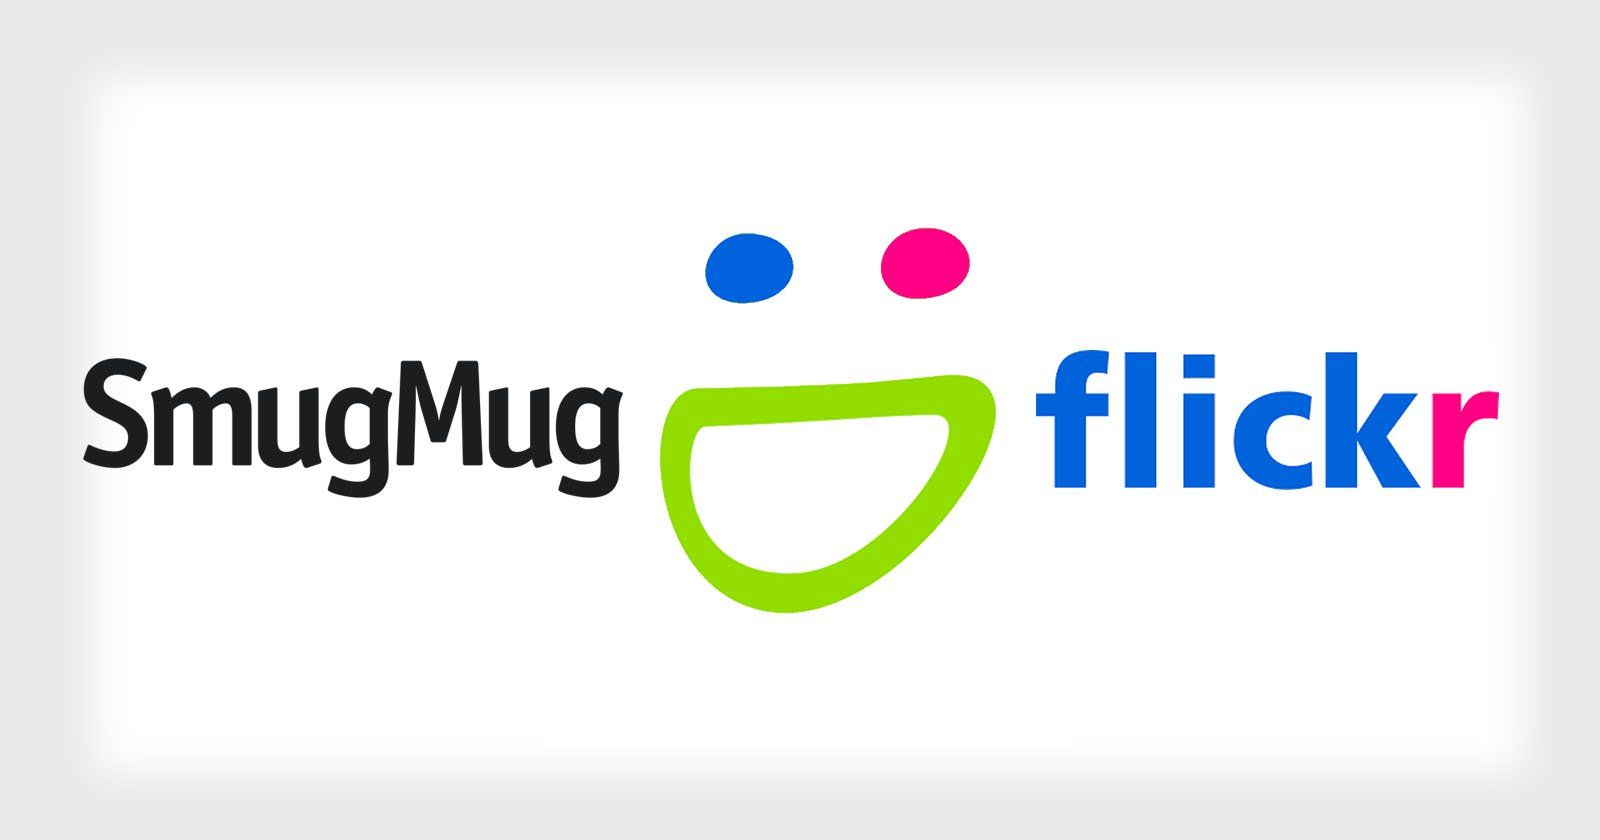 My Thoughts on the SmugMug Flickr Acquisition Thoughts